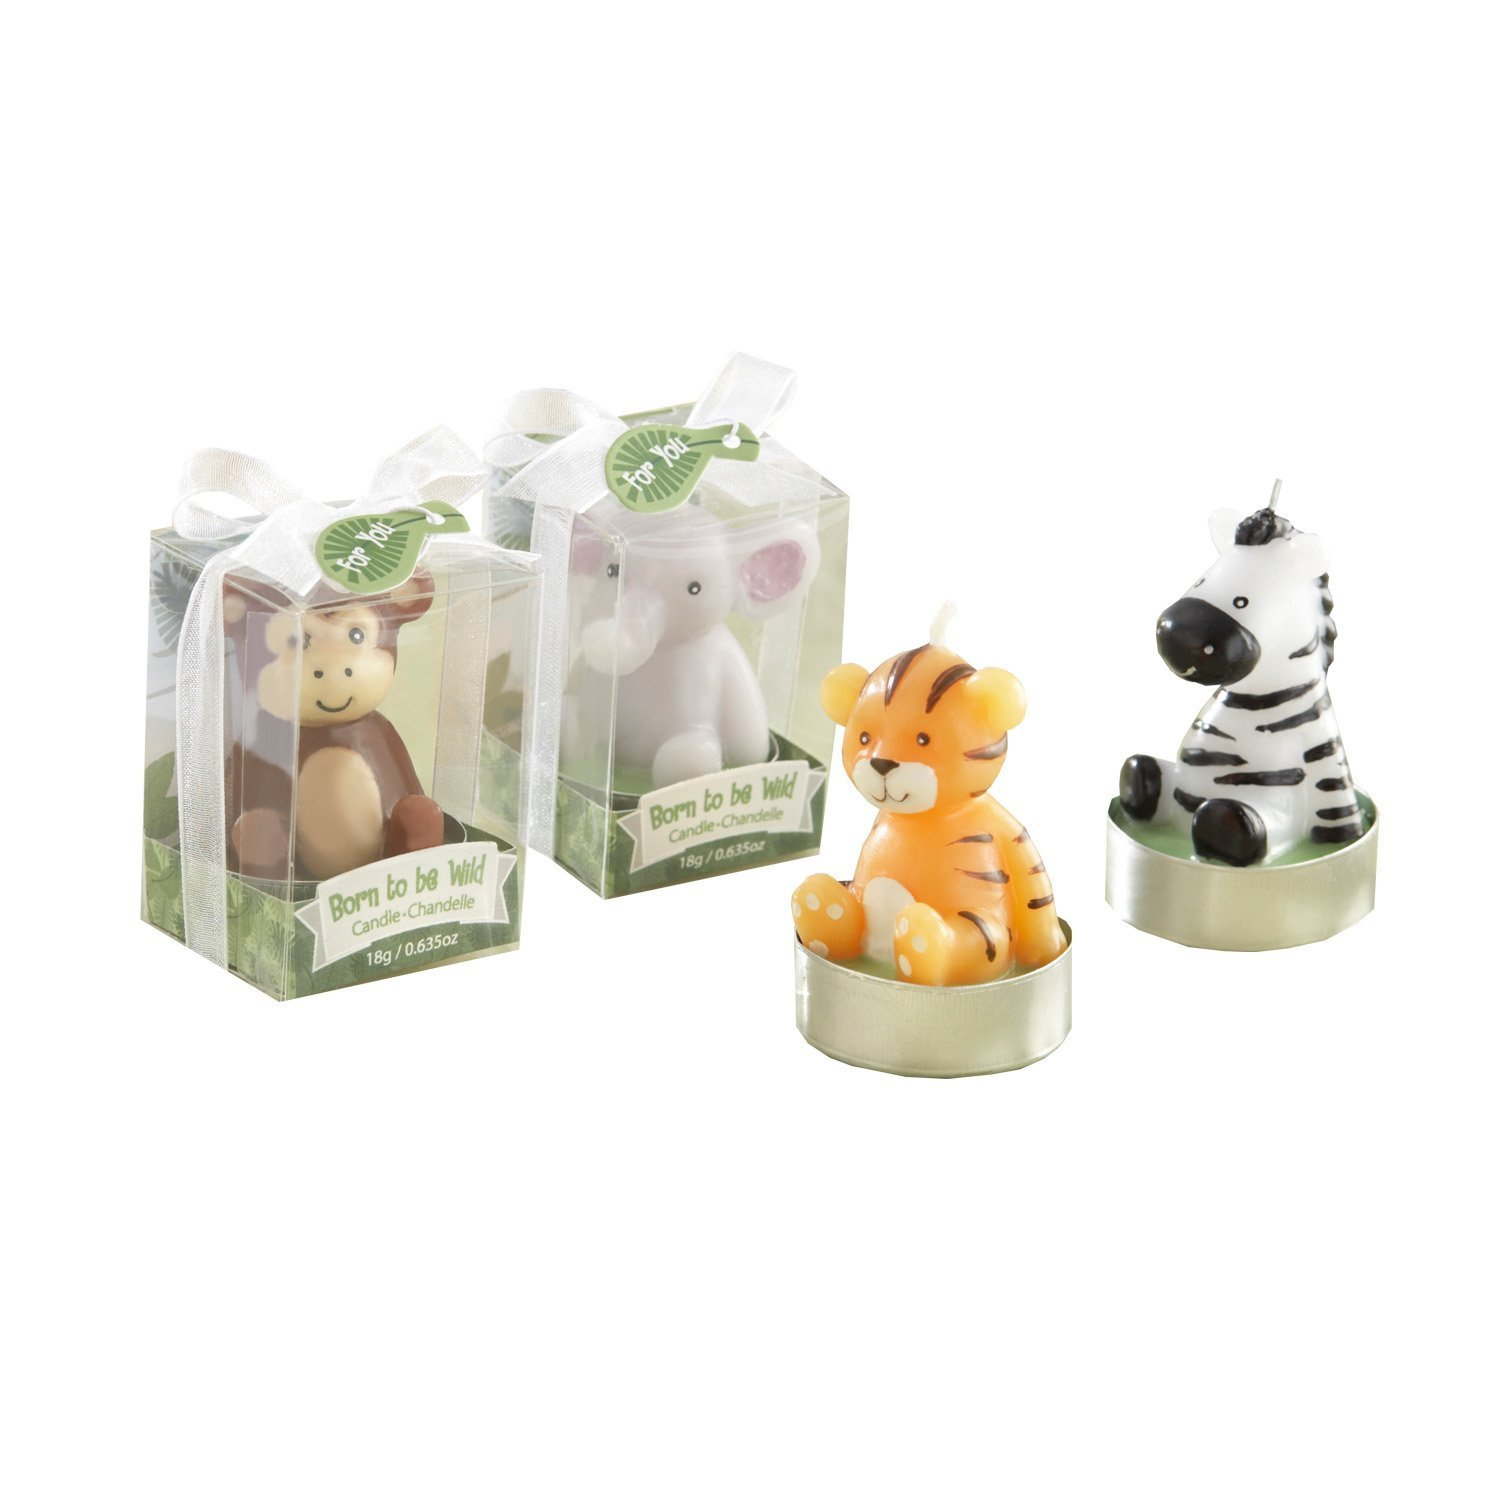 ''Born to be Wild'' Animal Candles (Set of 4 Assorted. 24 sets total)